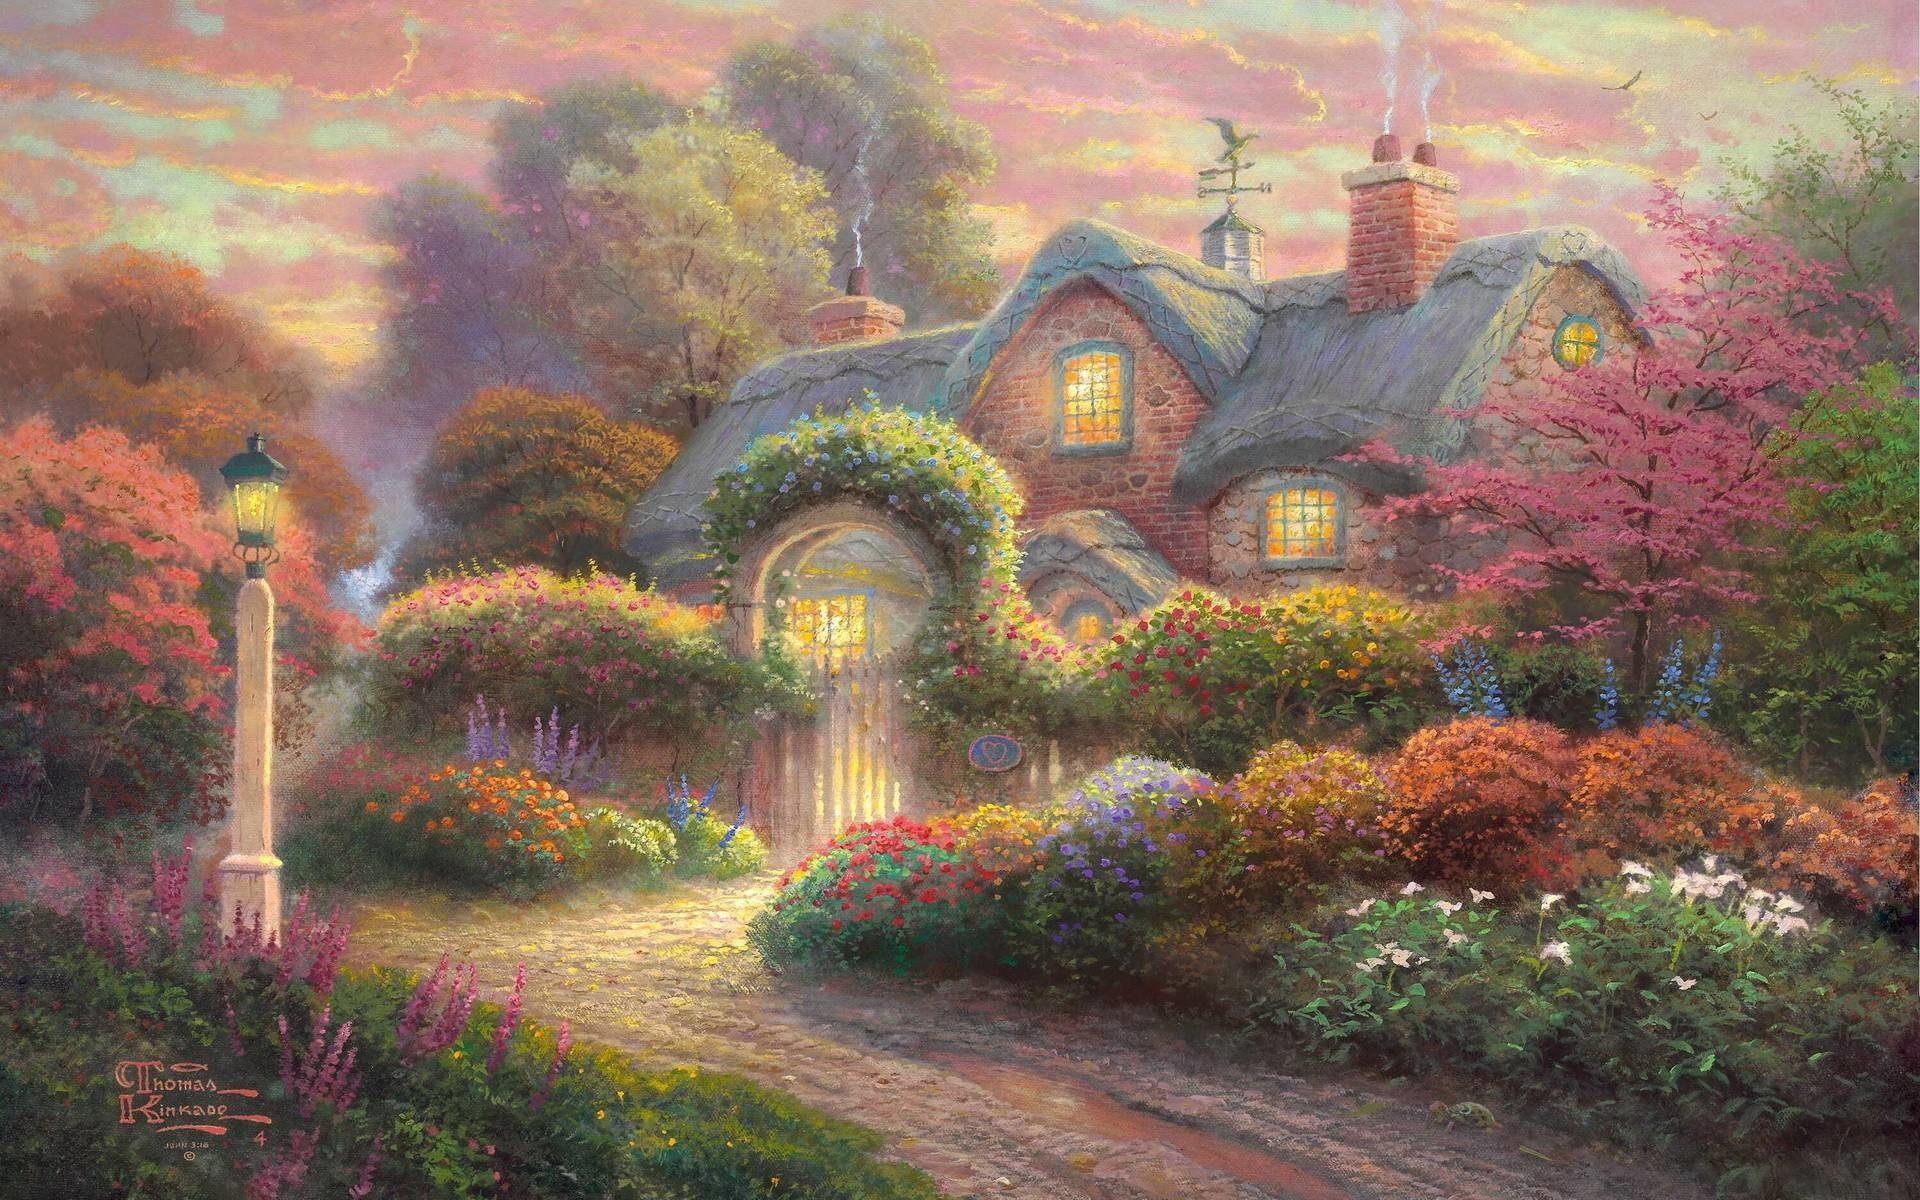 1920x1200 Thomas Kinkade Wallpapers | HD Wallpapers Pictures